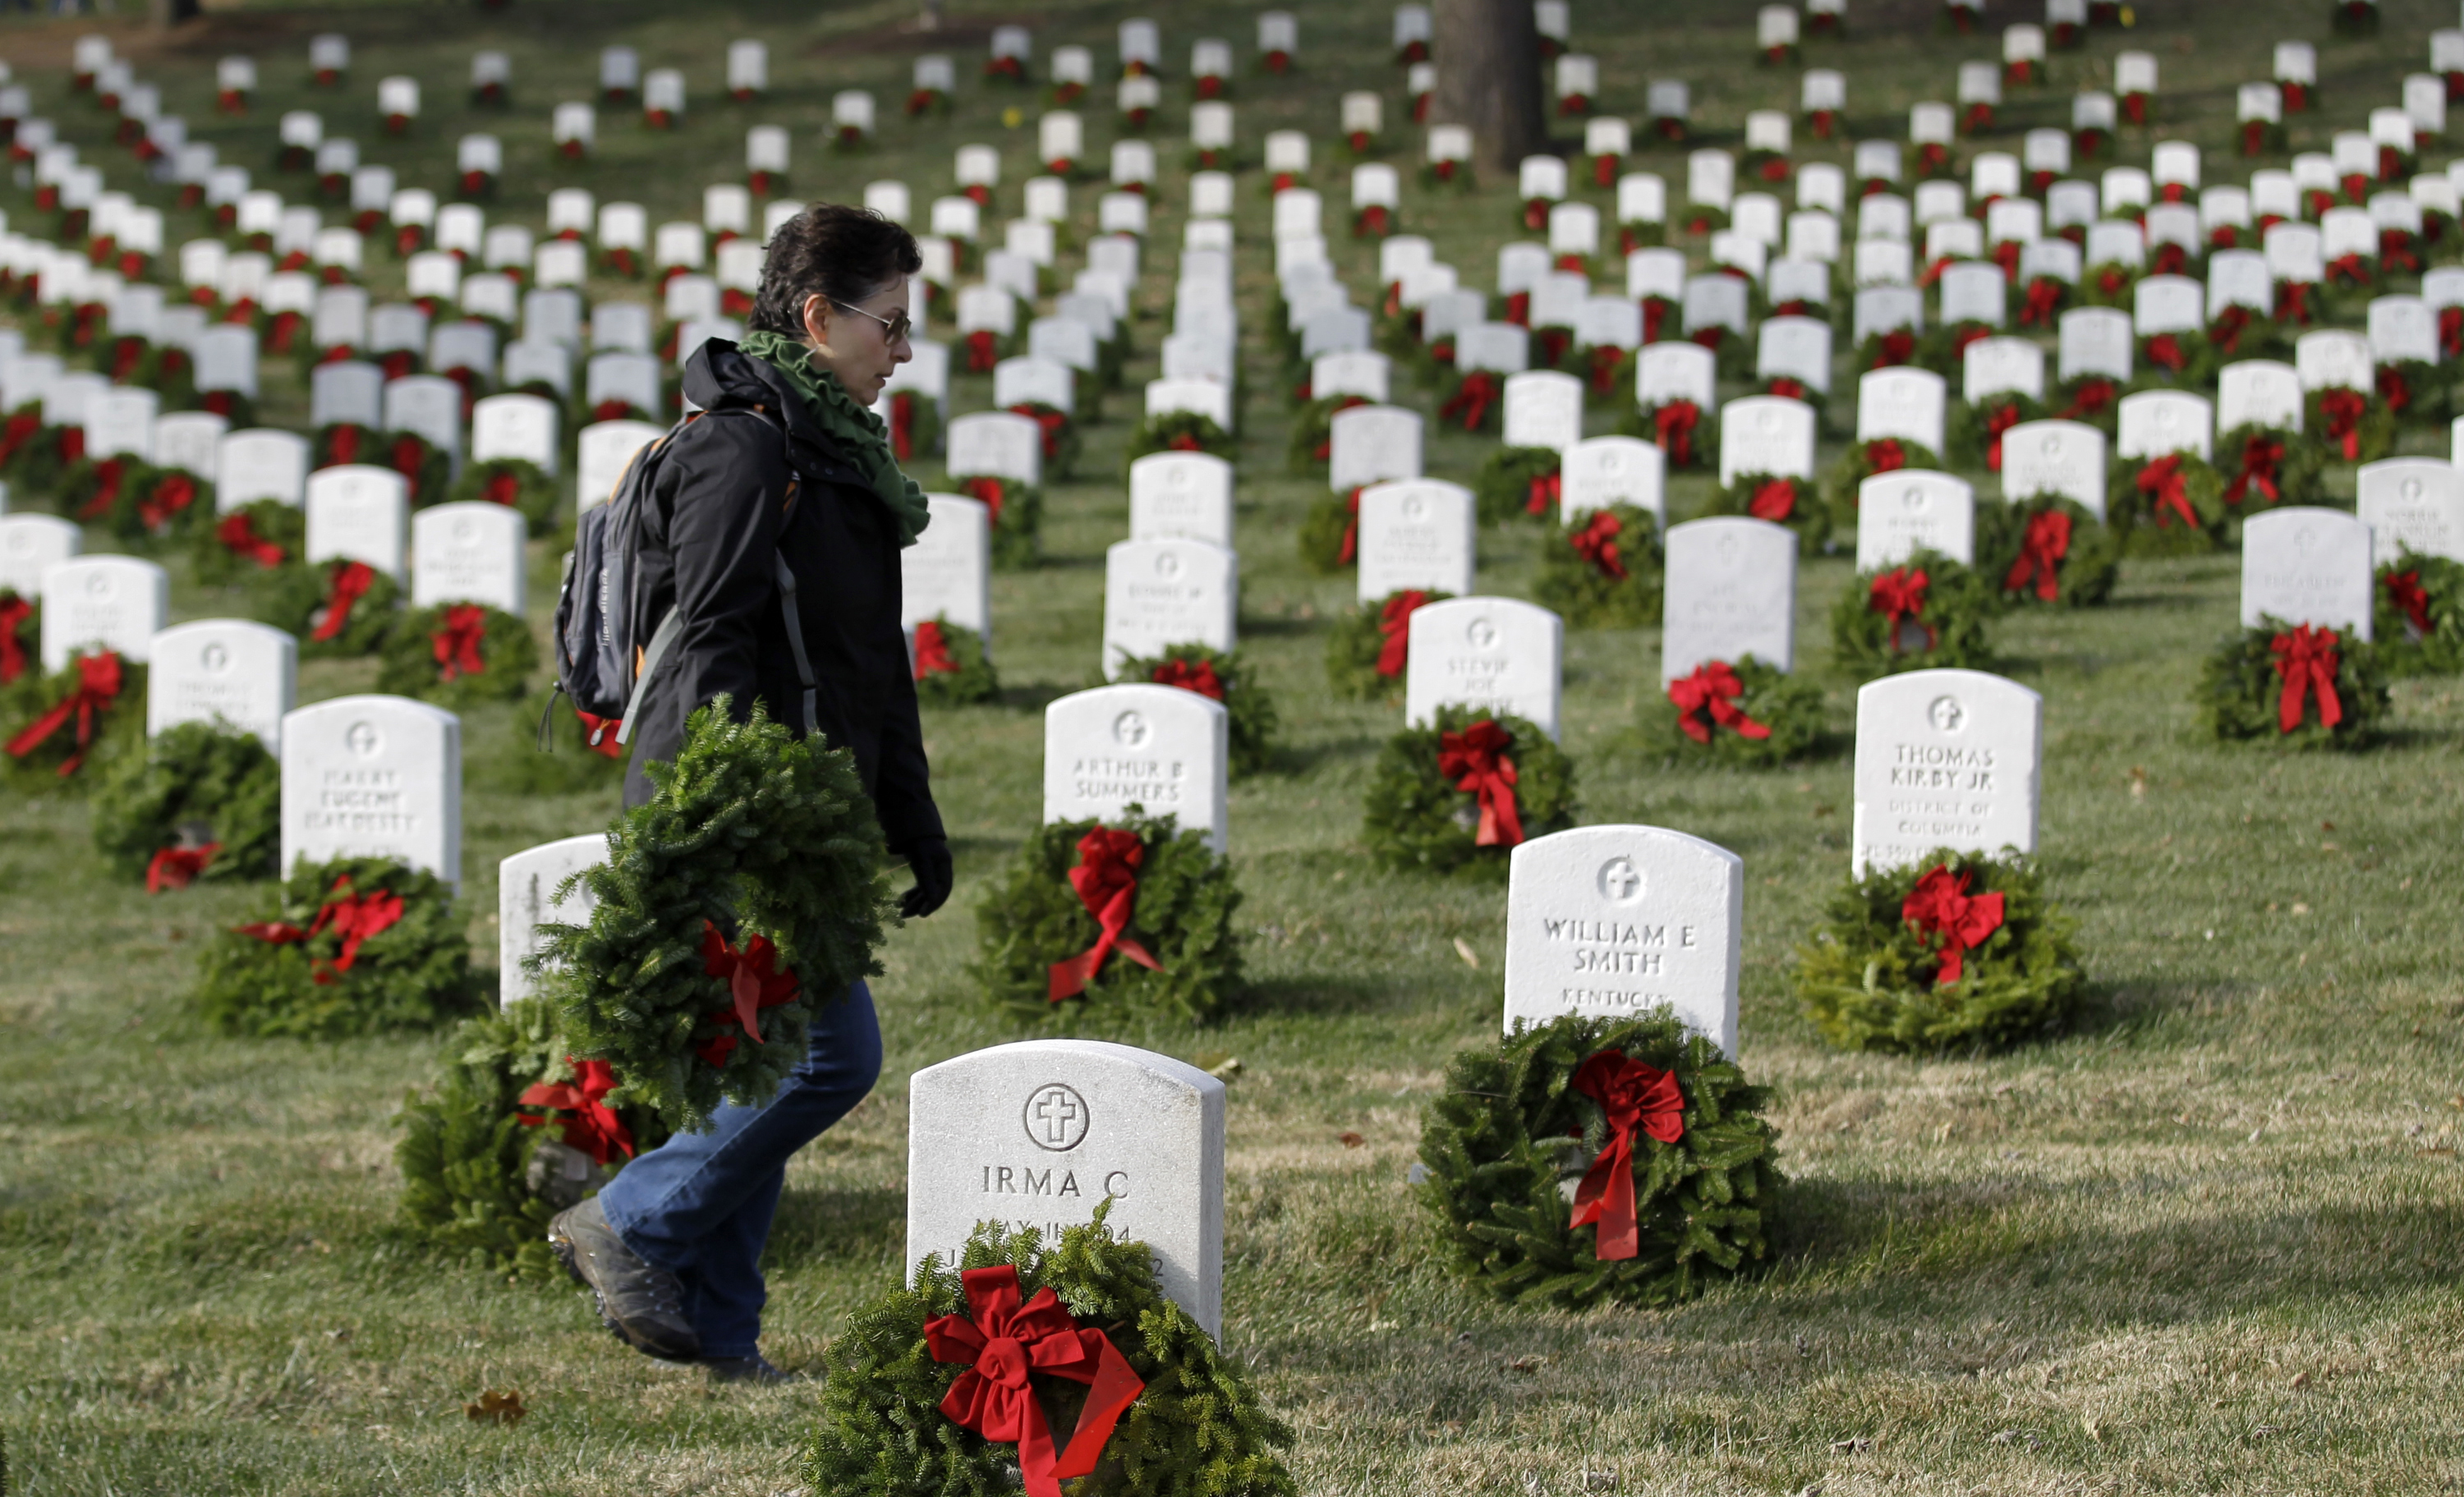 With outpouring, nonprofit reaches goal of wreaths for Arlington Cemetery